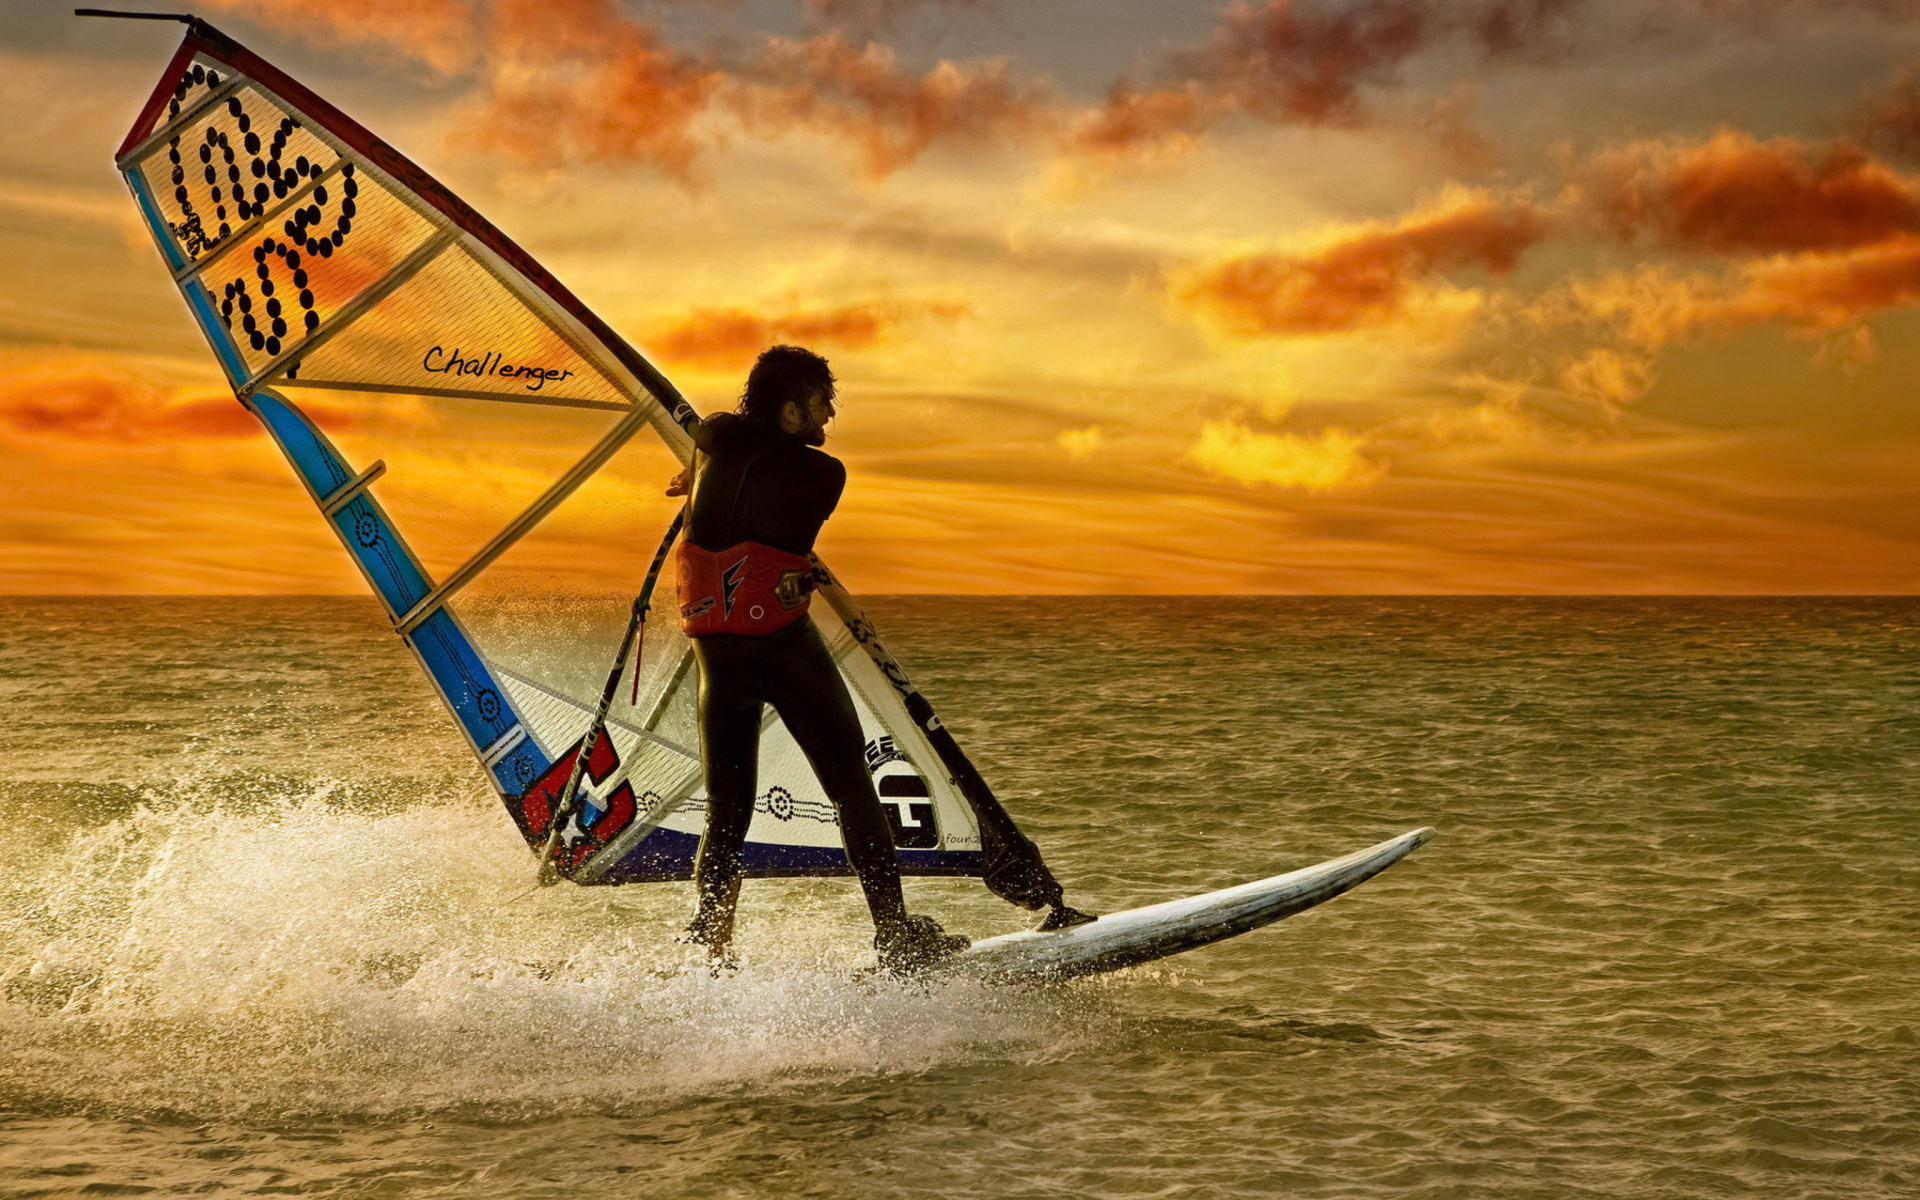 free 1920X1200 Surfing At Sunset 1920x1200 wallpaper screensaver 1920x1200